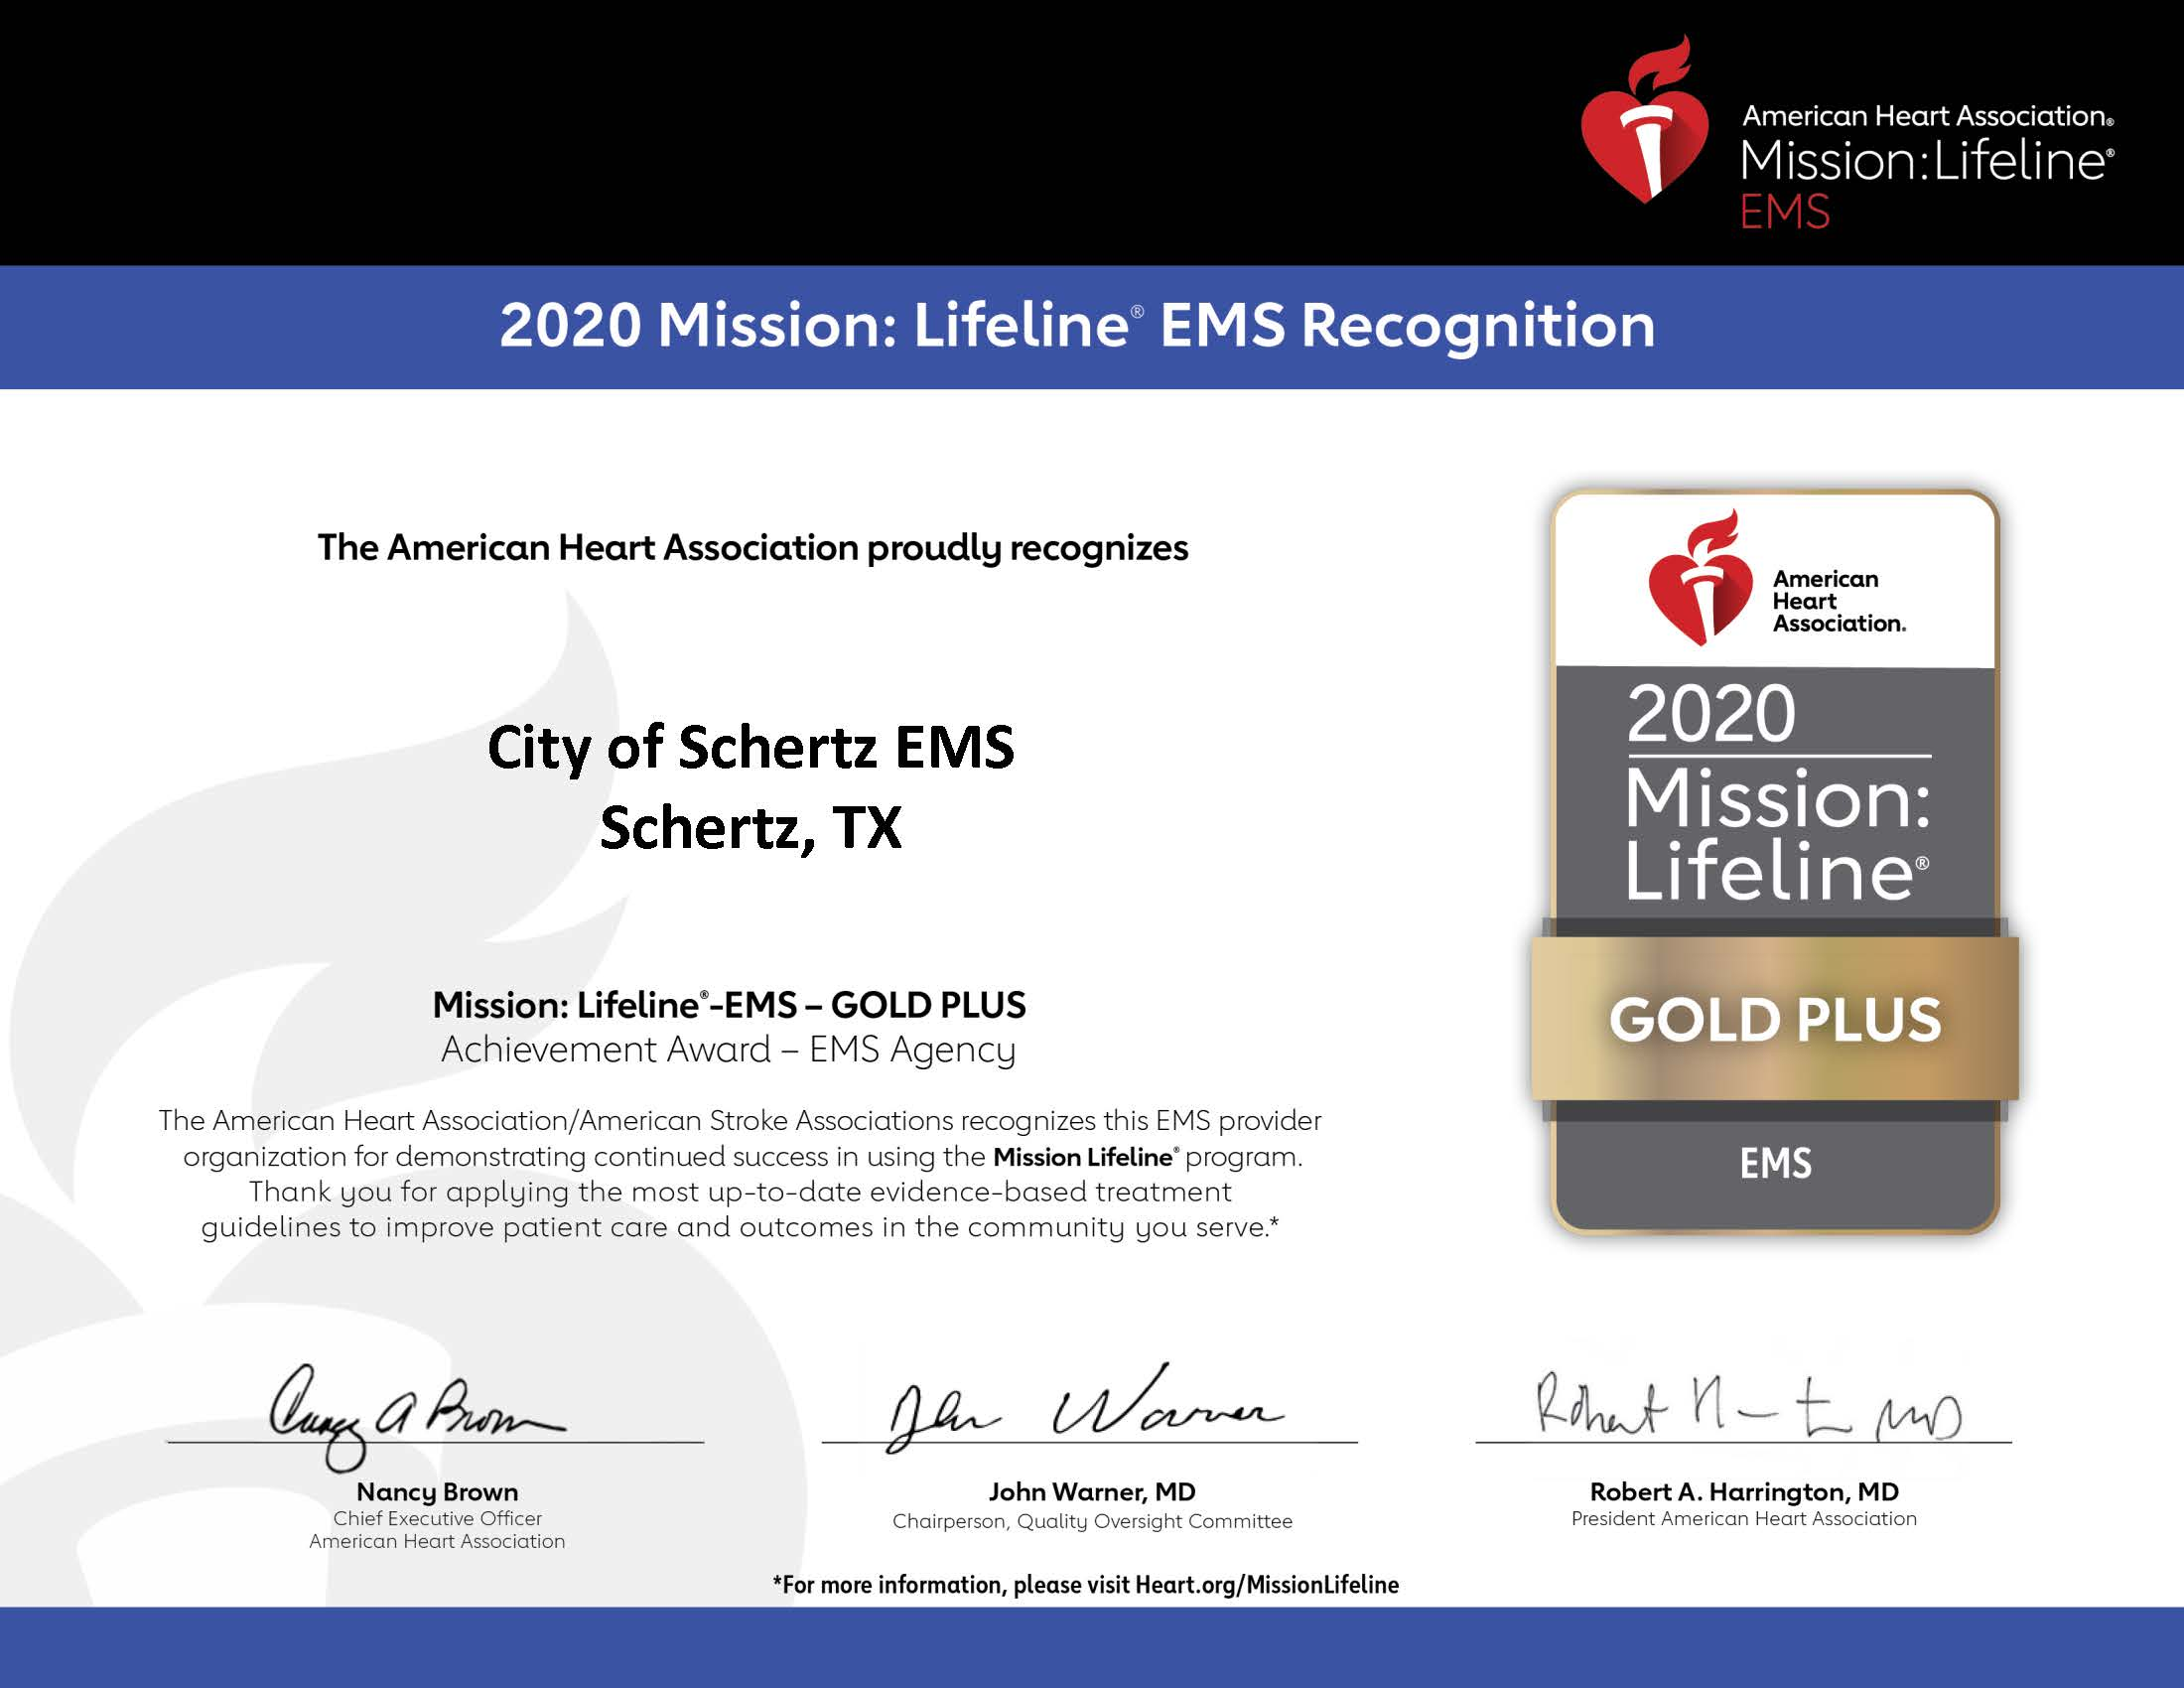 City of Schertz EMS_GOLD PLUS_2020